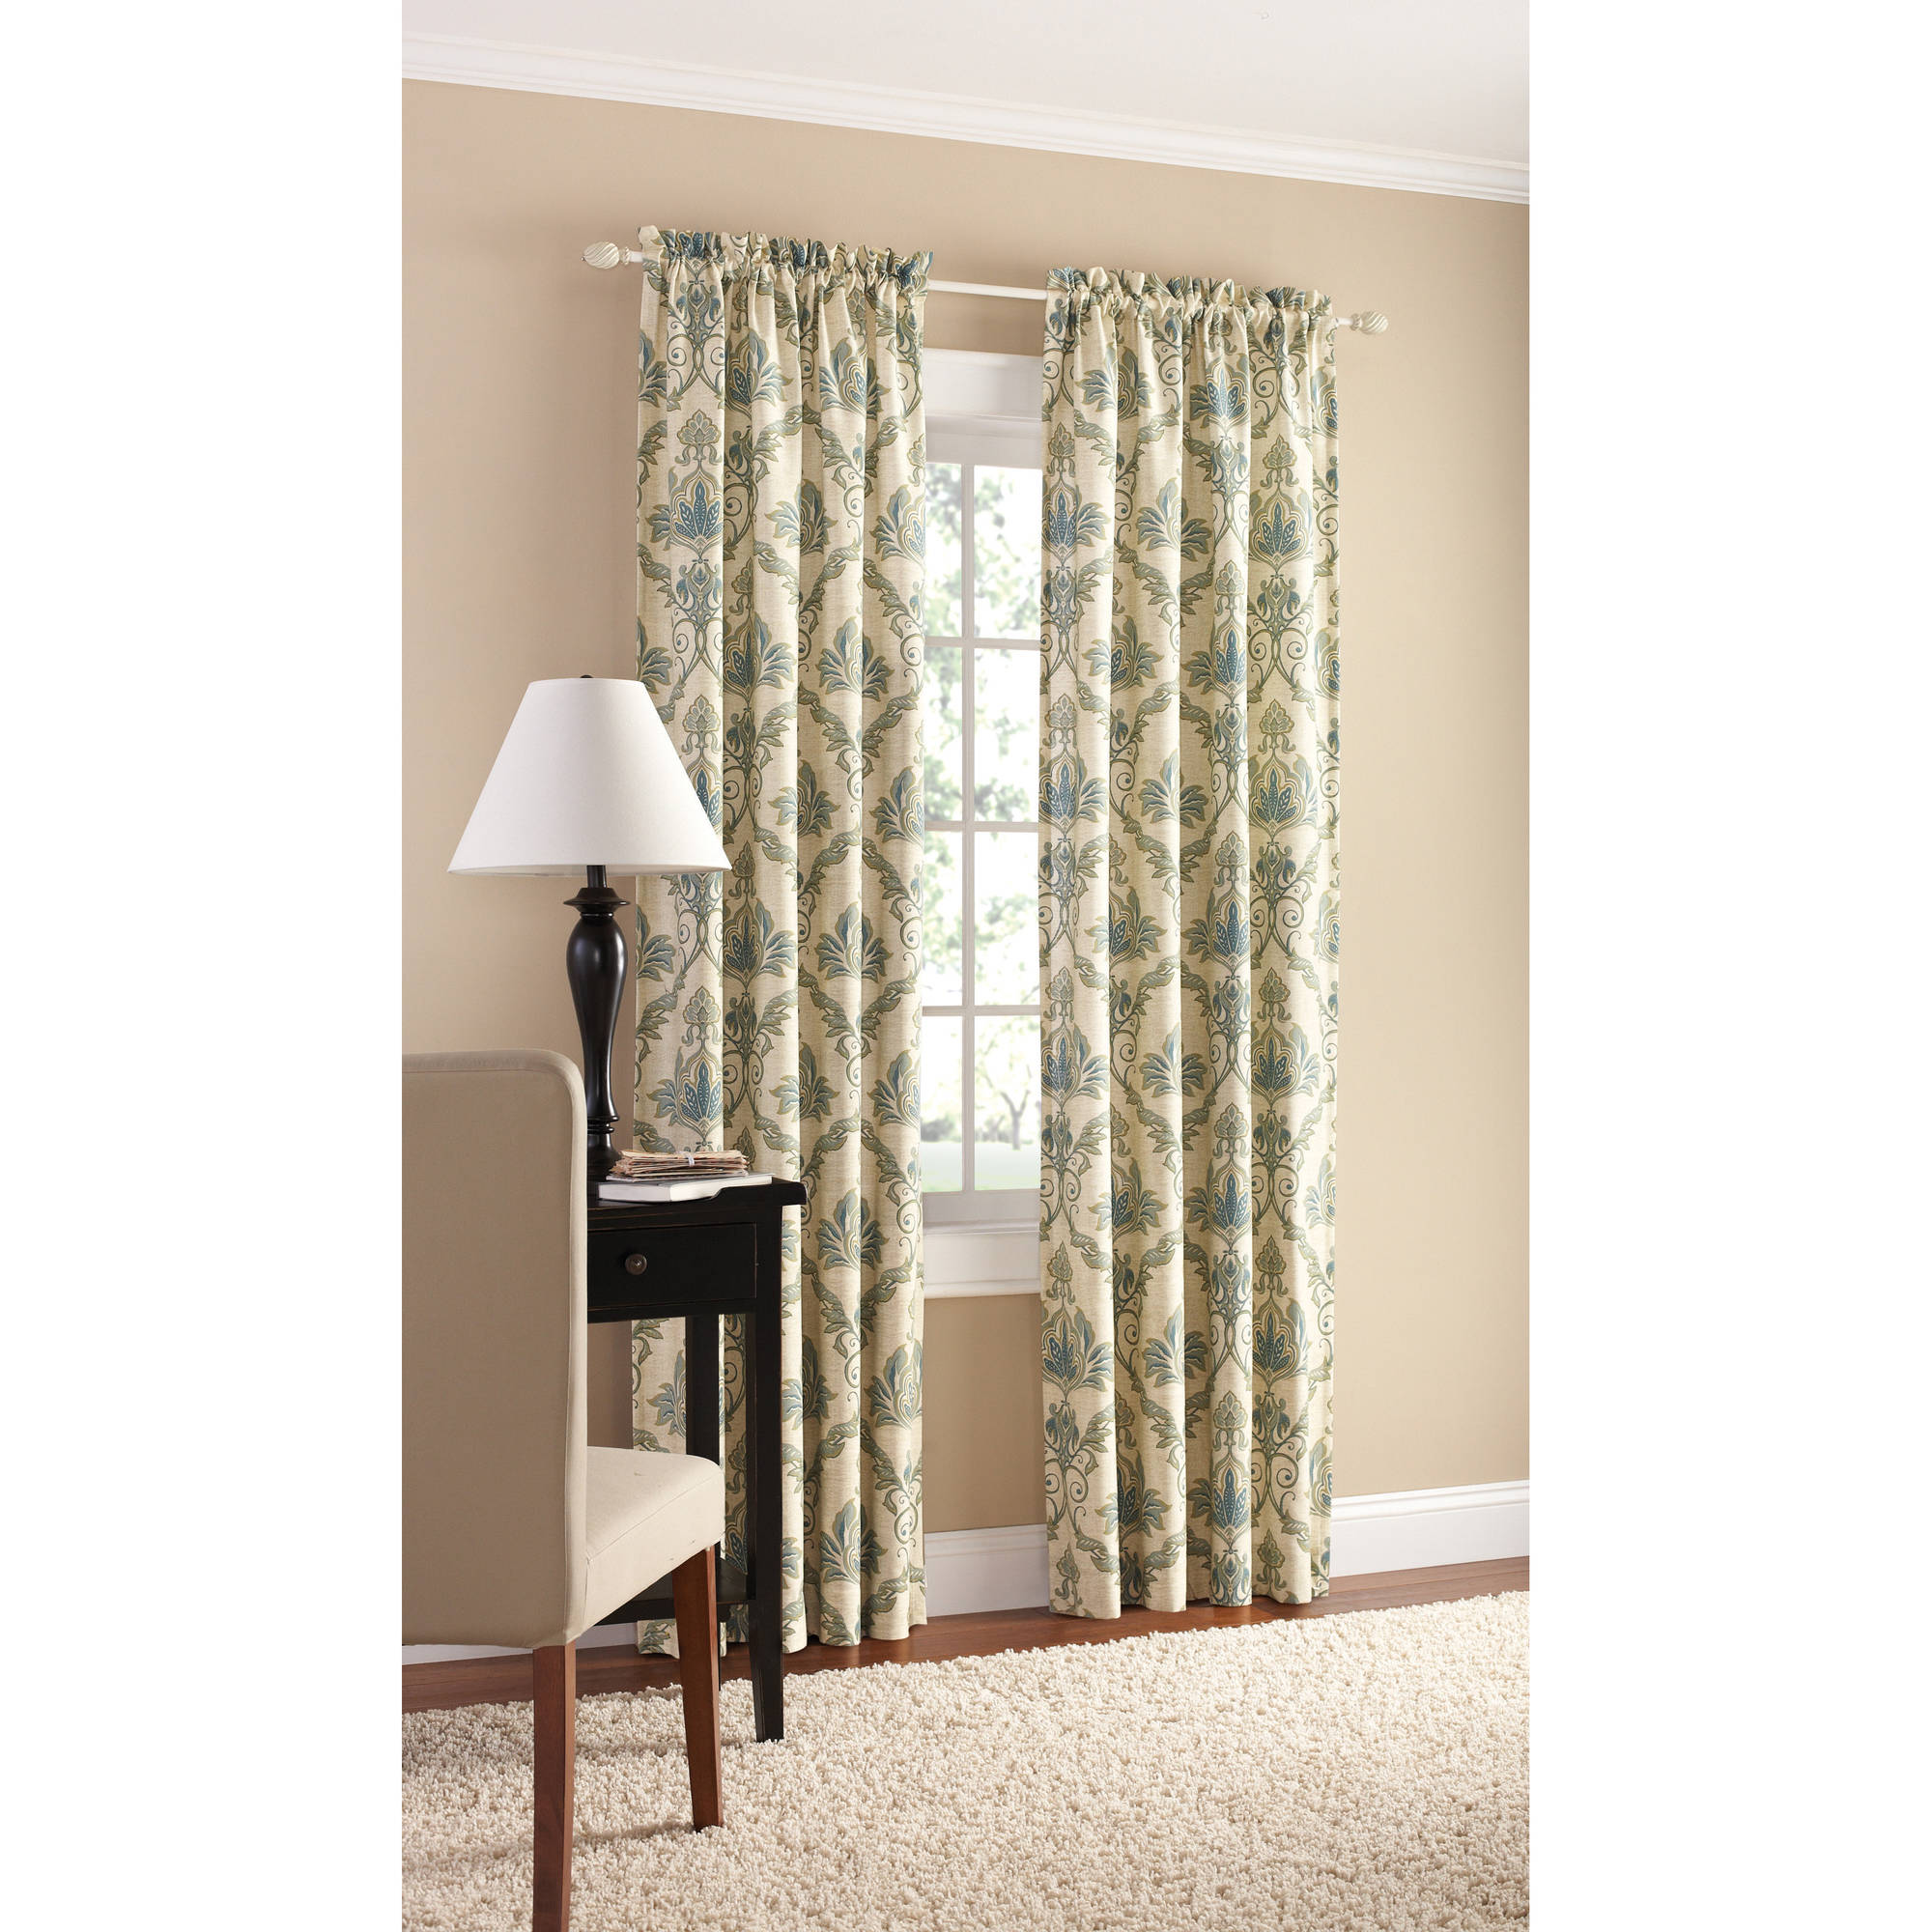 of curtains vox these with would veritas our damask look bedroom drapes great and in lovely info teal black inspirational